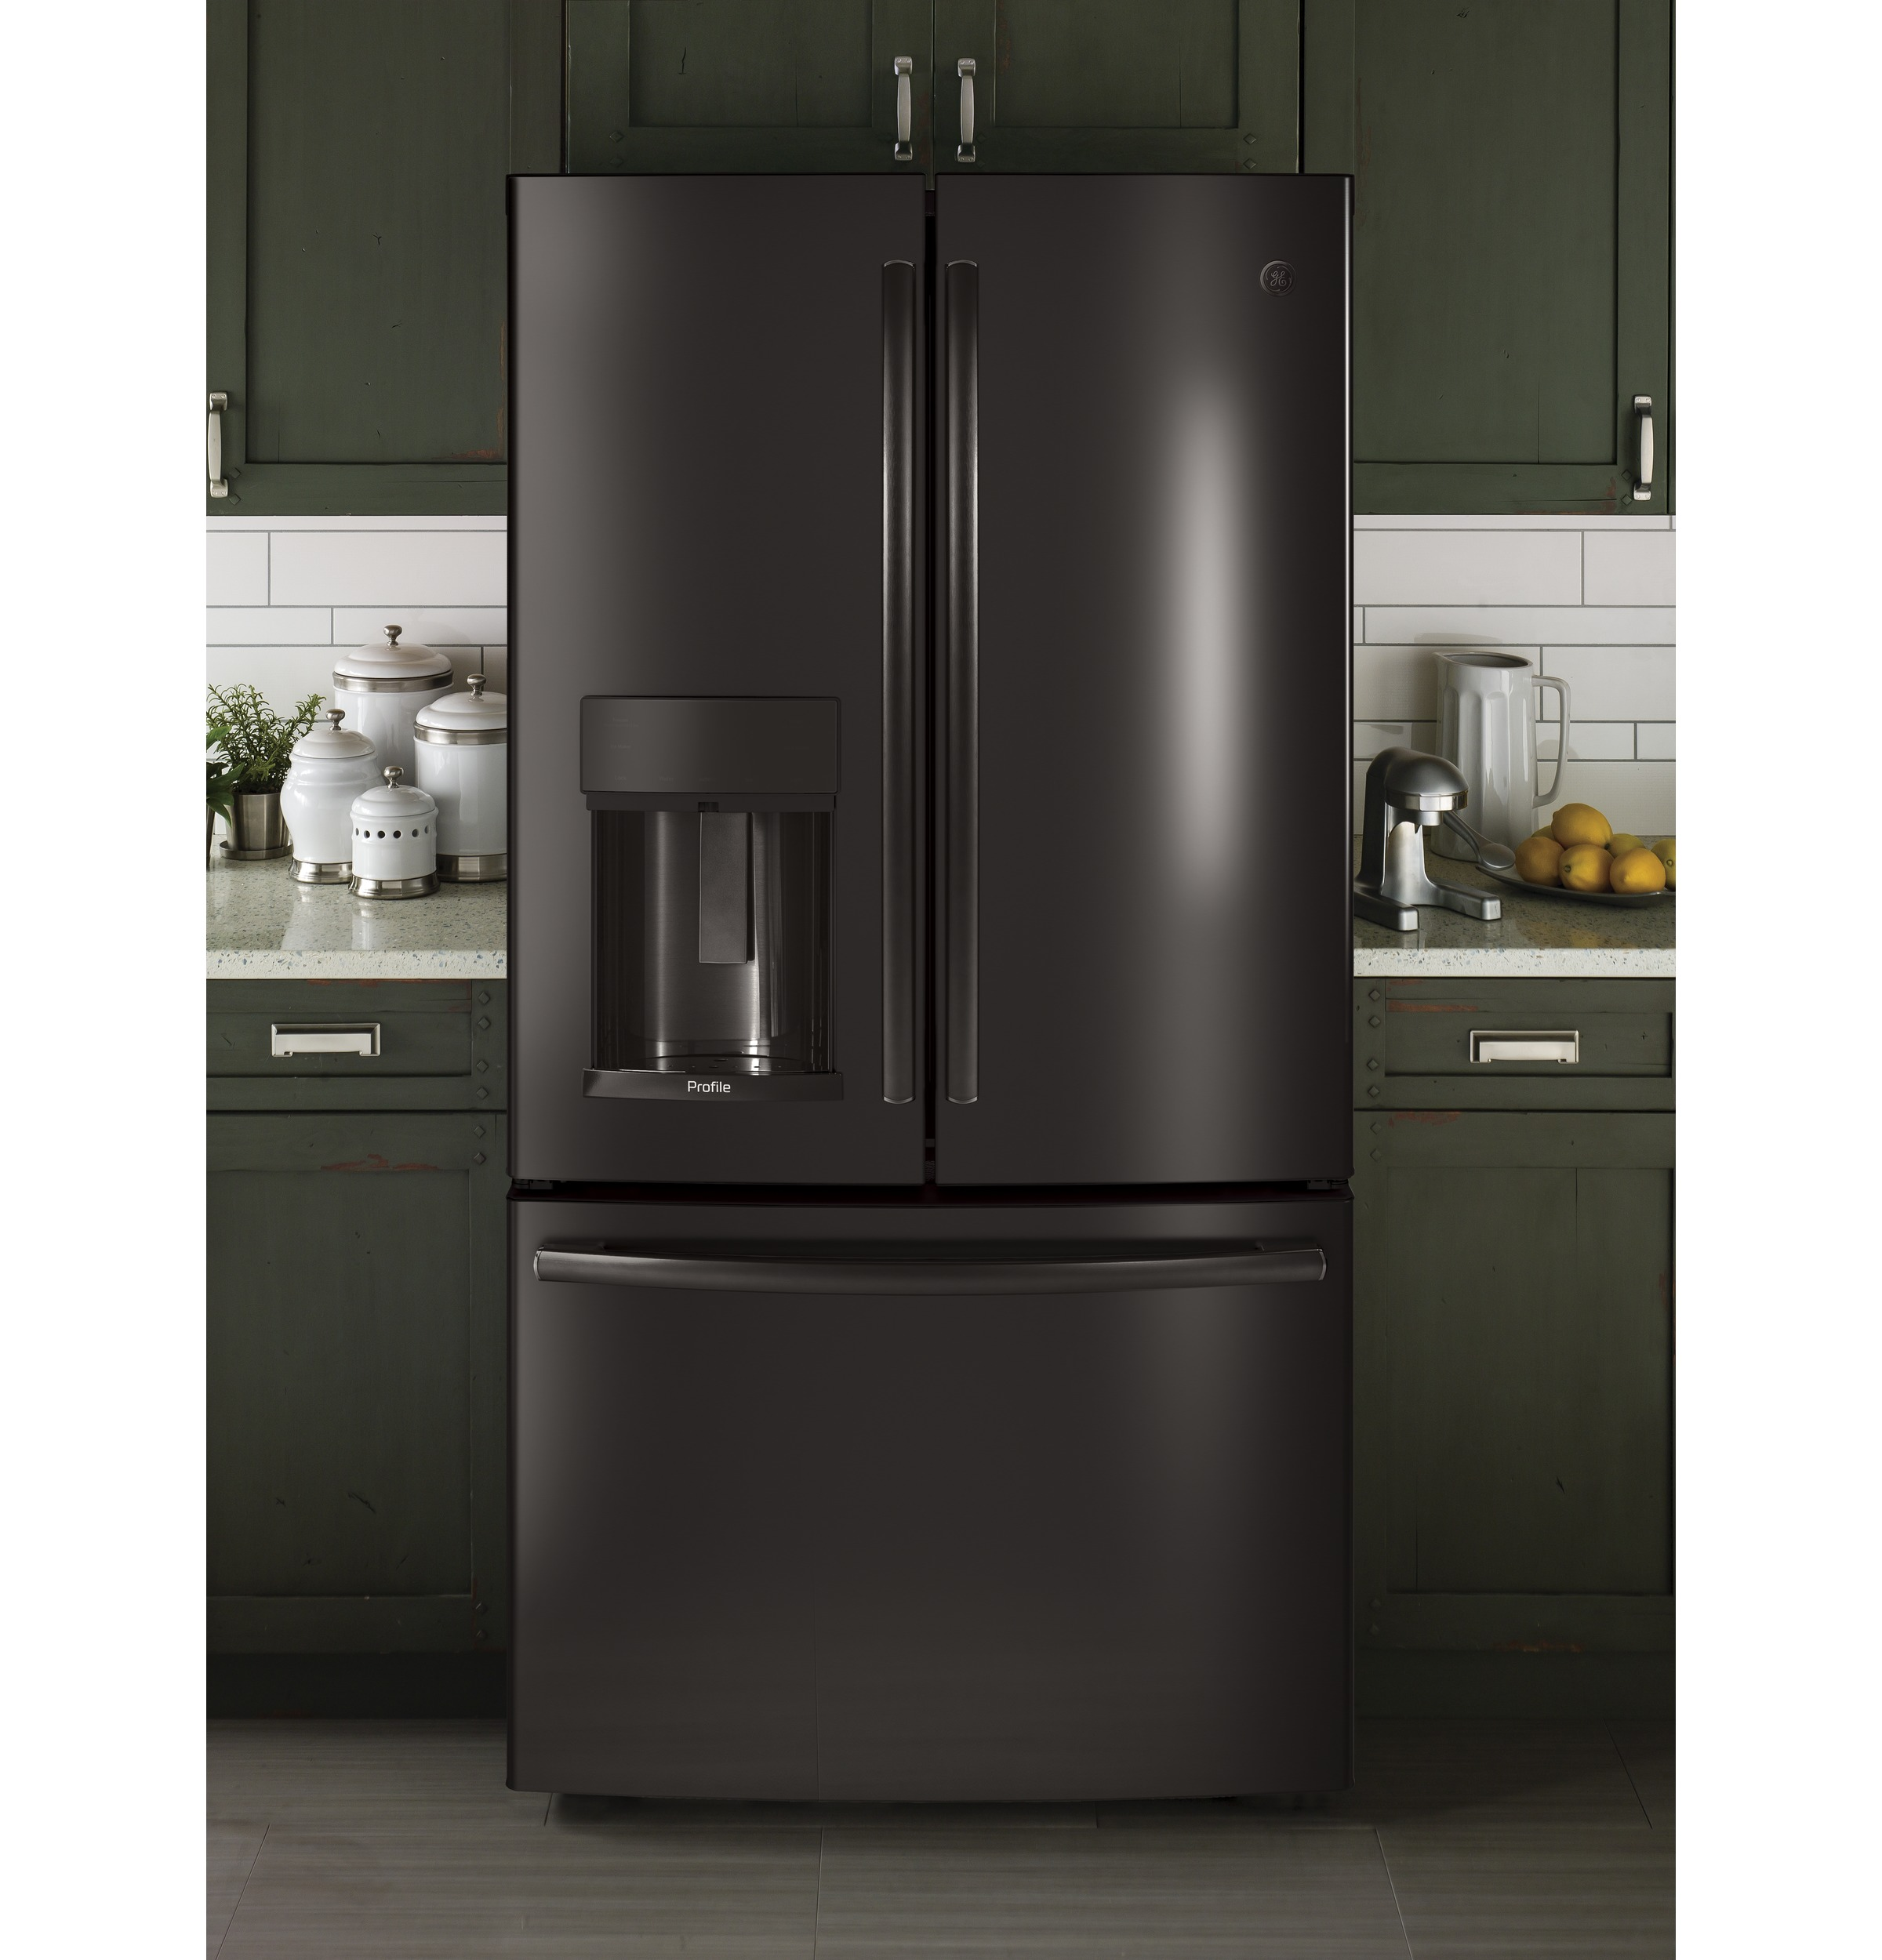 Model: PYE22KBLTS | GE Profile™ Series ENERGY STAR® 22.2 Cu. Ft. Counter-Depth French-Door Refrigerator with Hands-Free AutoFill